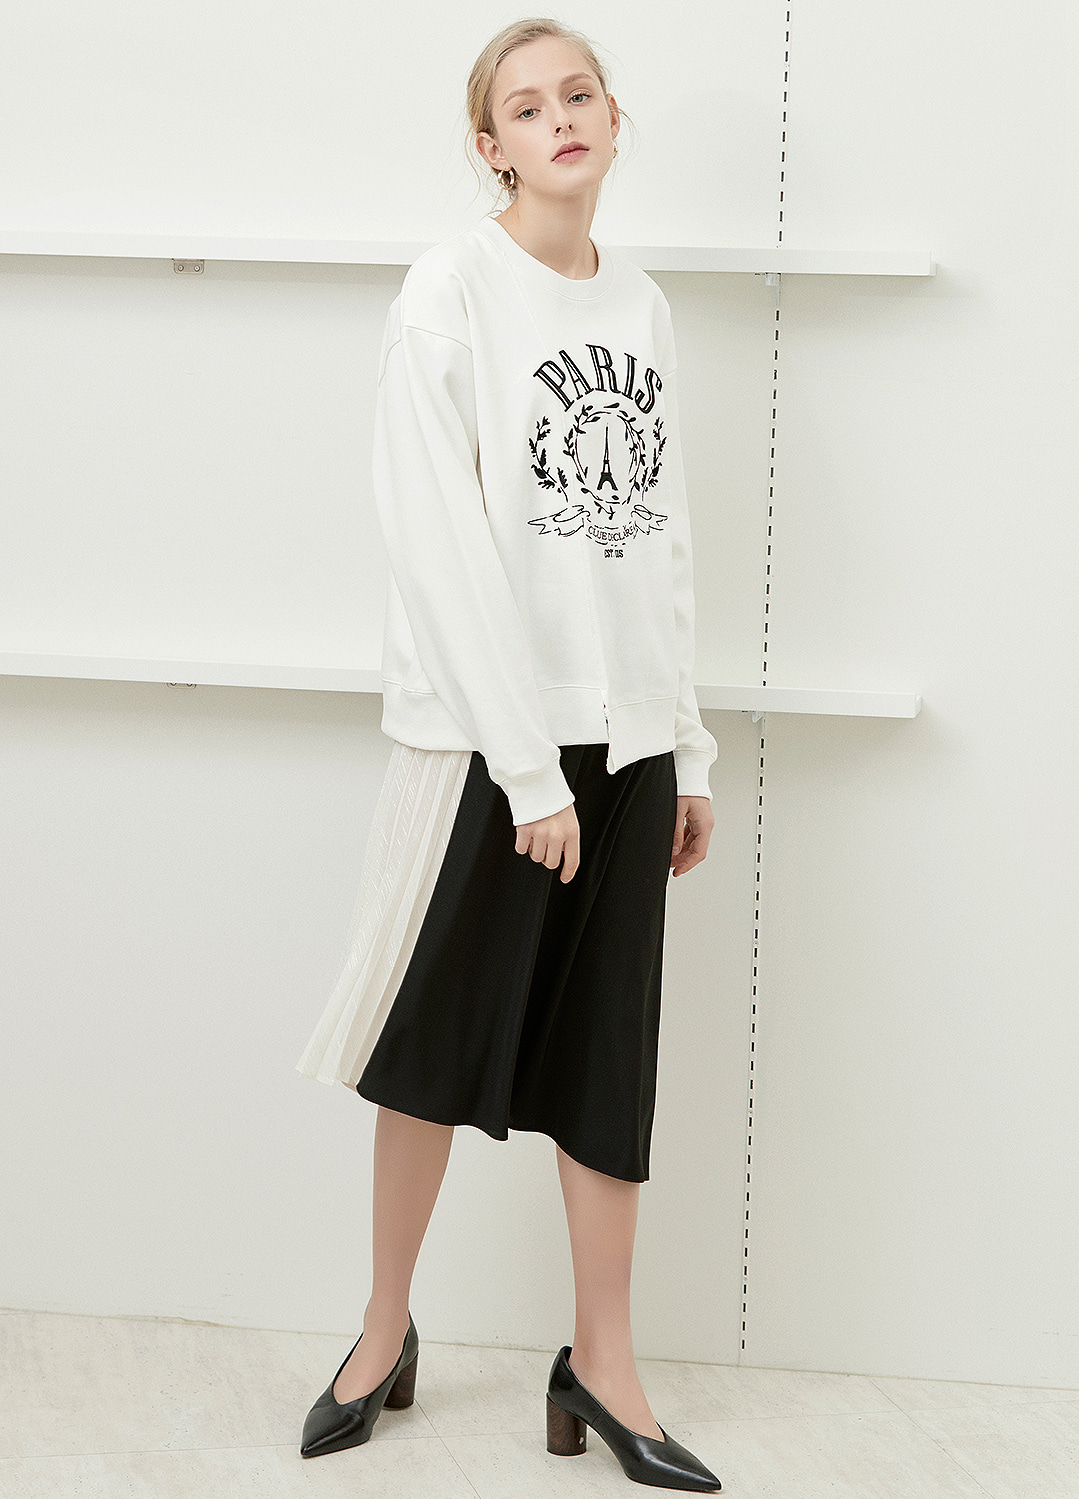 embroidered detail sweat shirt White 20%